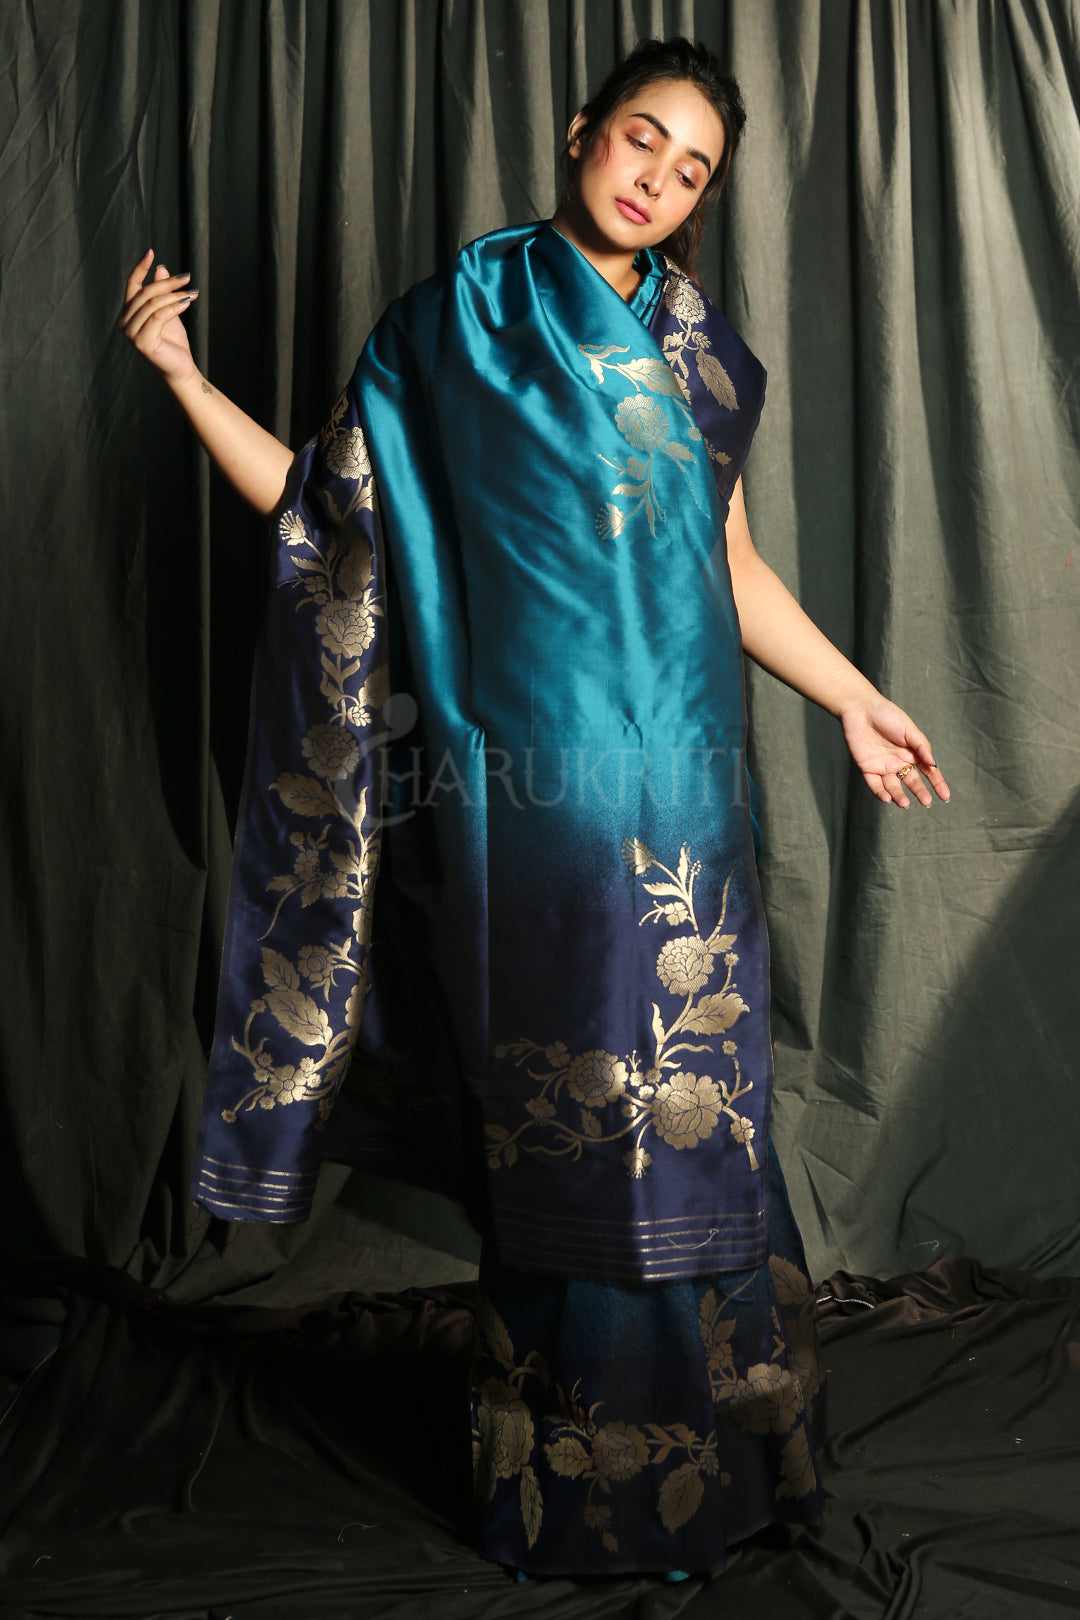 TEAL  BLUE AND NAVY BLUE DUPION SILK SAREE WITH GOLDEN FLORAL BORDER